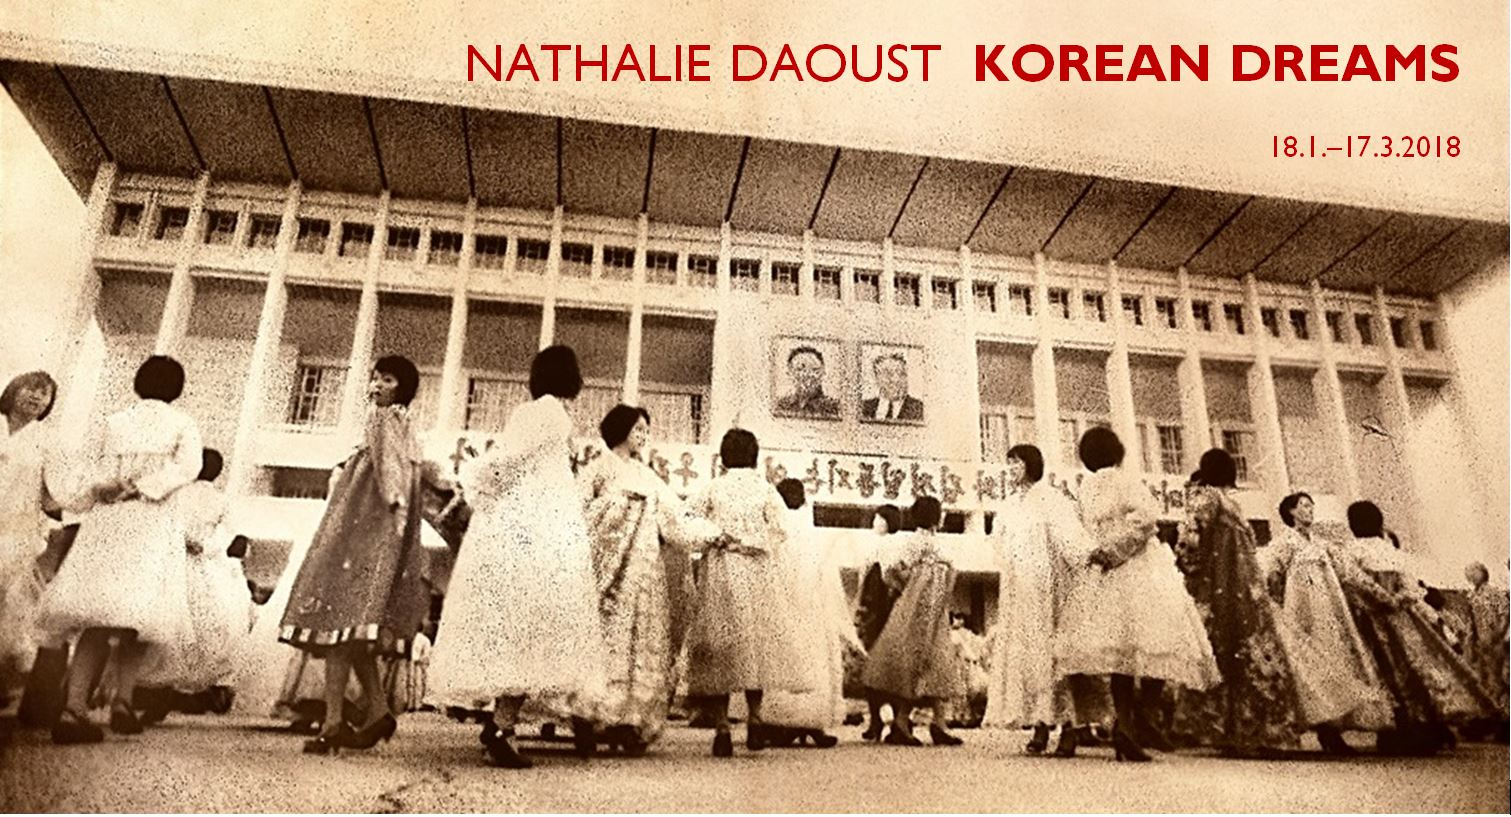 nathaliedaoustkoreandreams.JPG